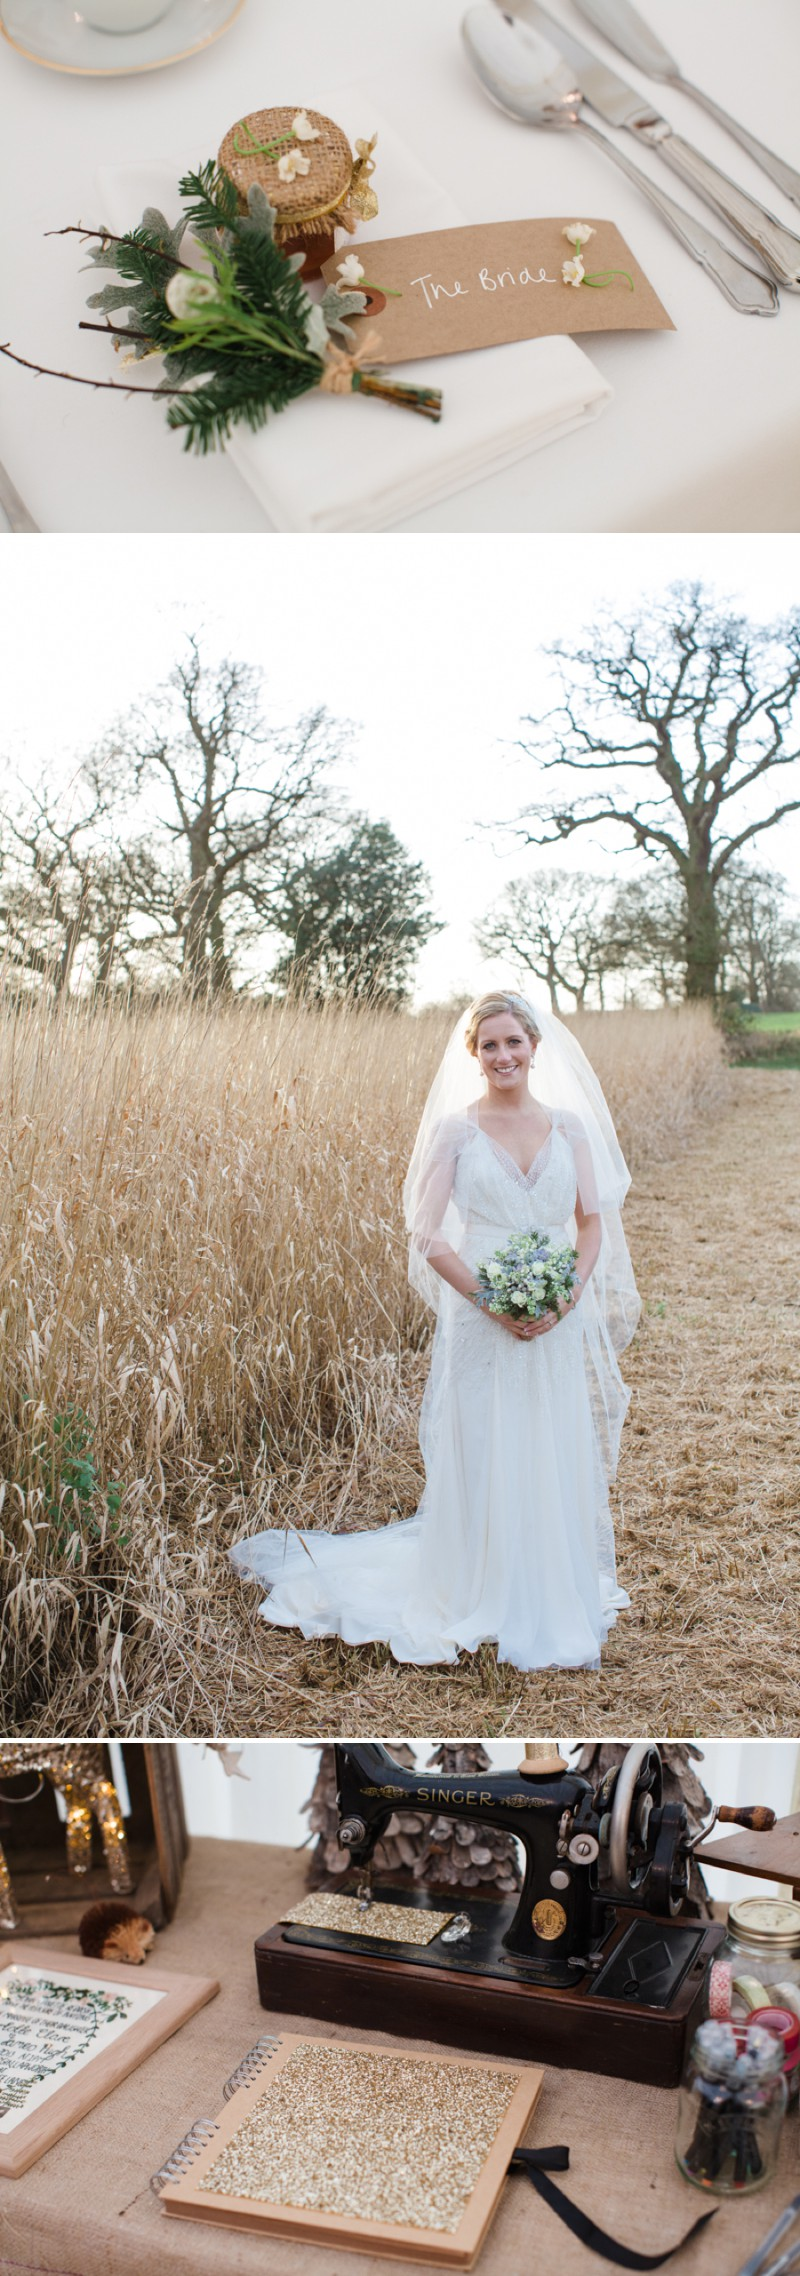 A Warm Winter Glamorous Rustic Wedding With A Jenny Packham Dress And Blue Toned Bouquet With Photography By Lucy Davenport._0008